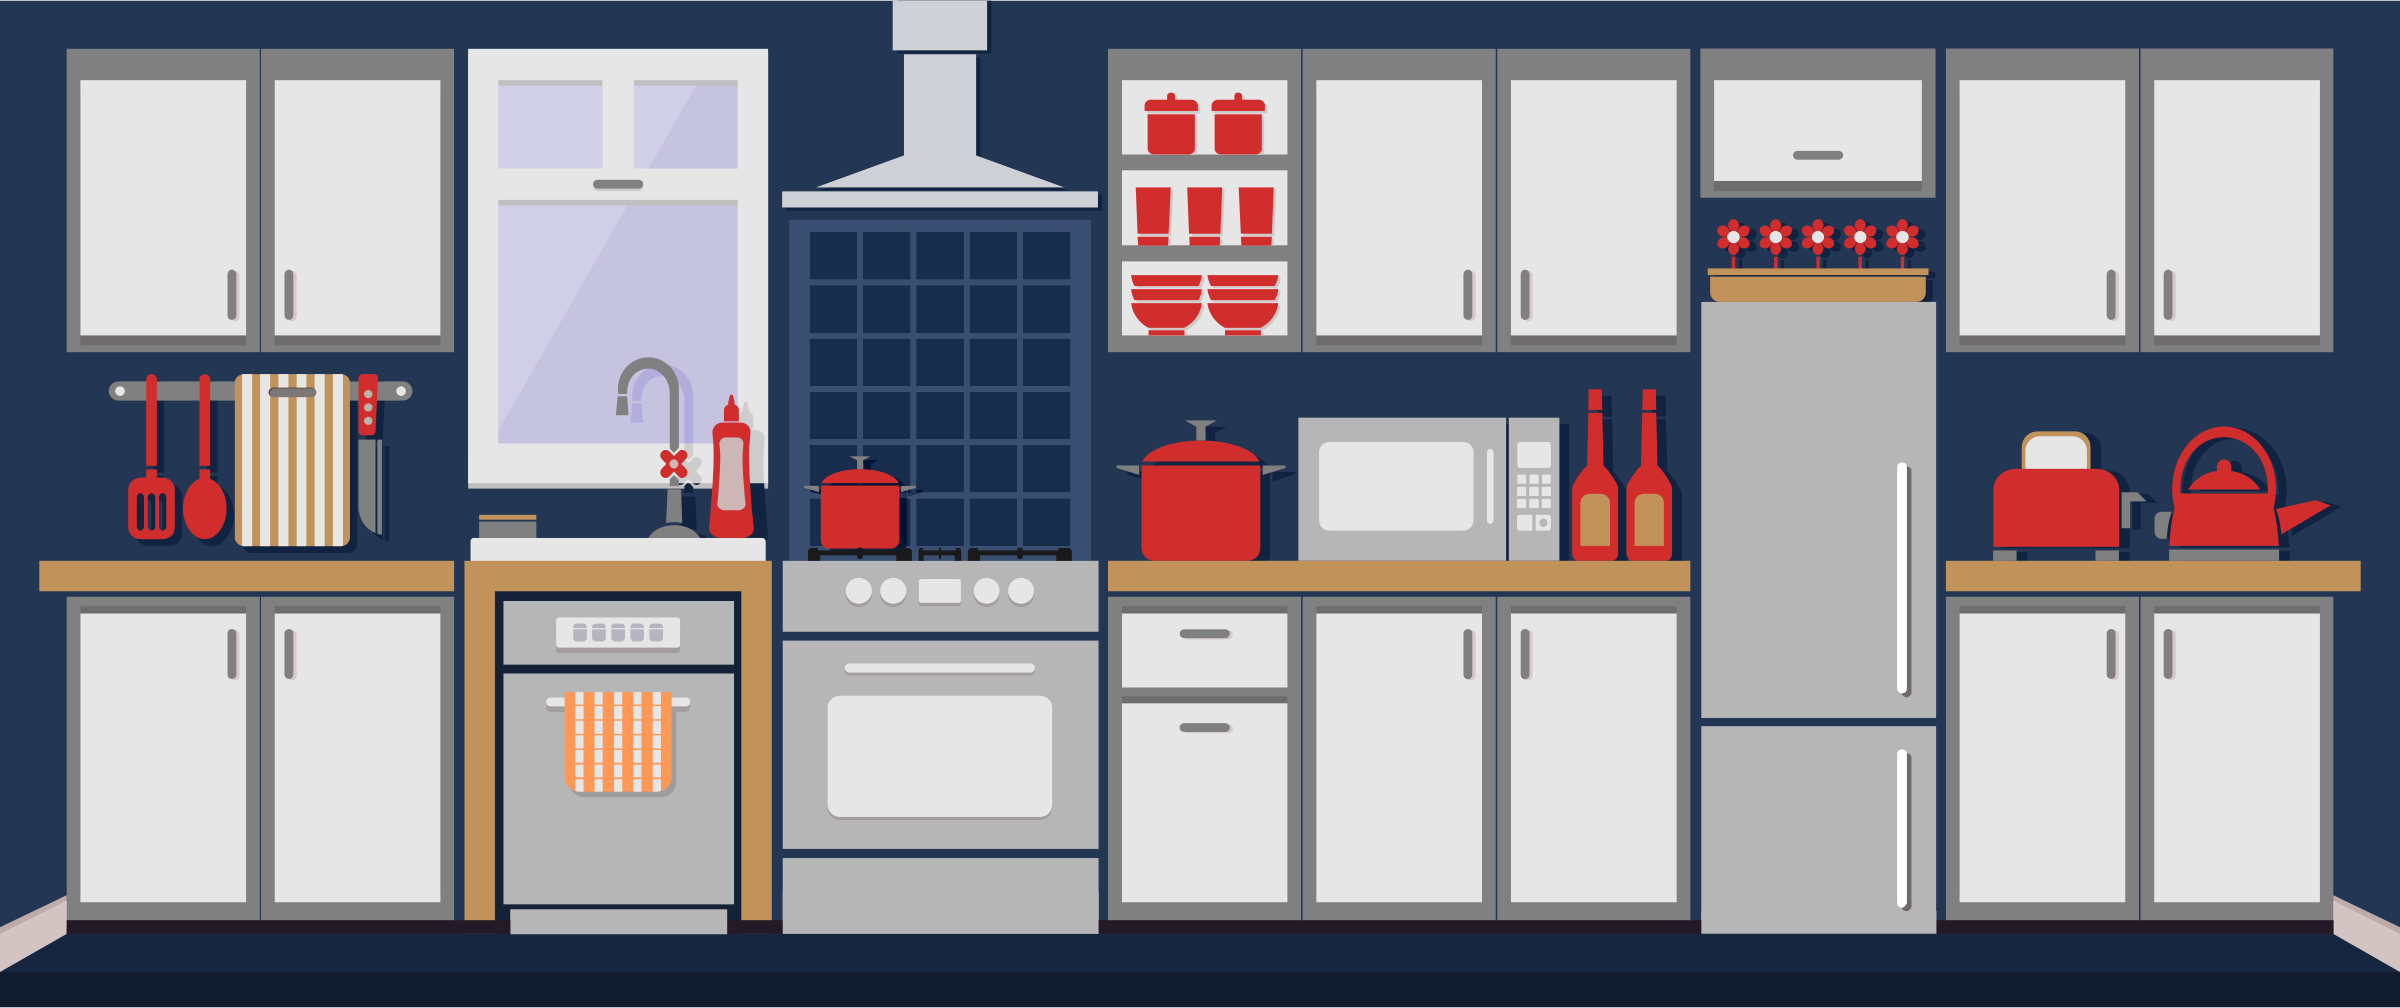 Kitchen Clipart - Clipart Kid